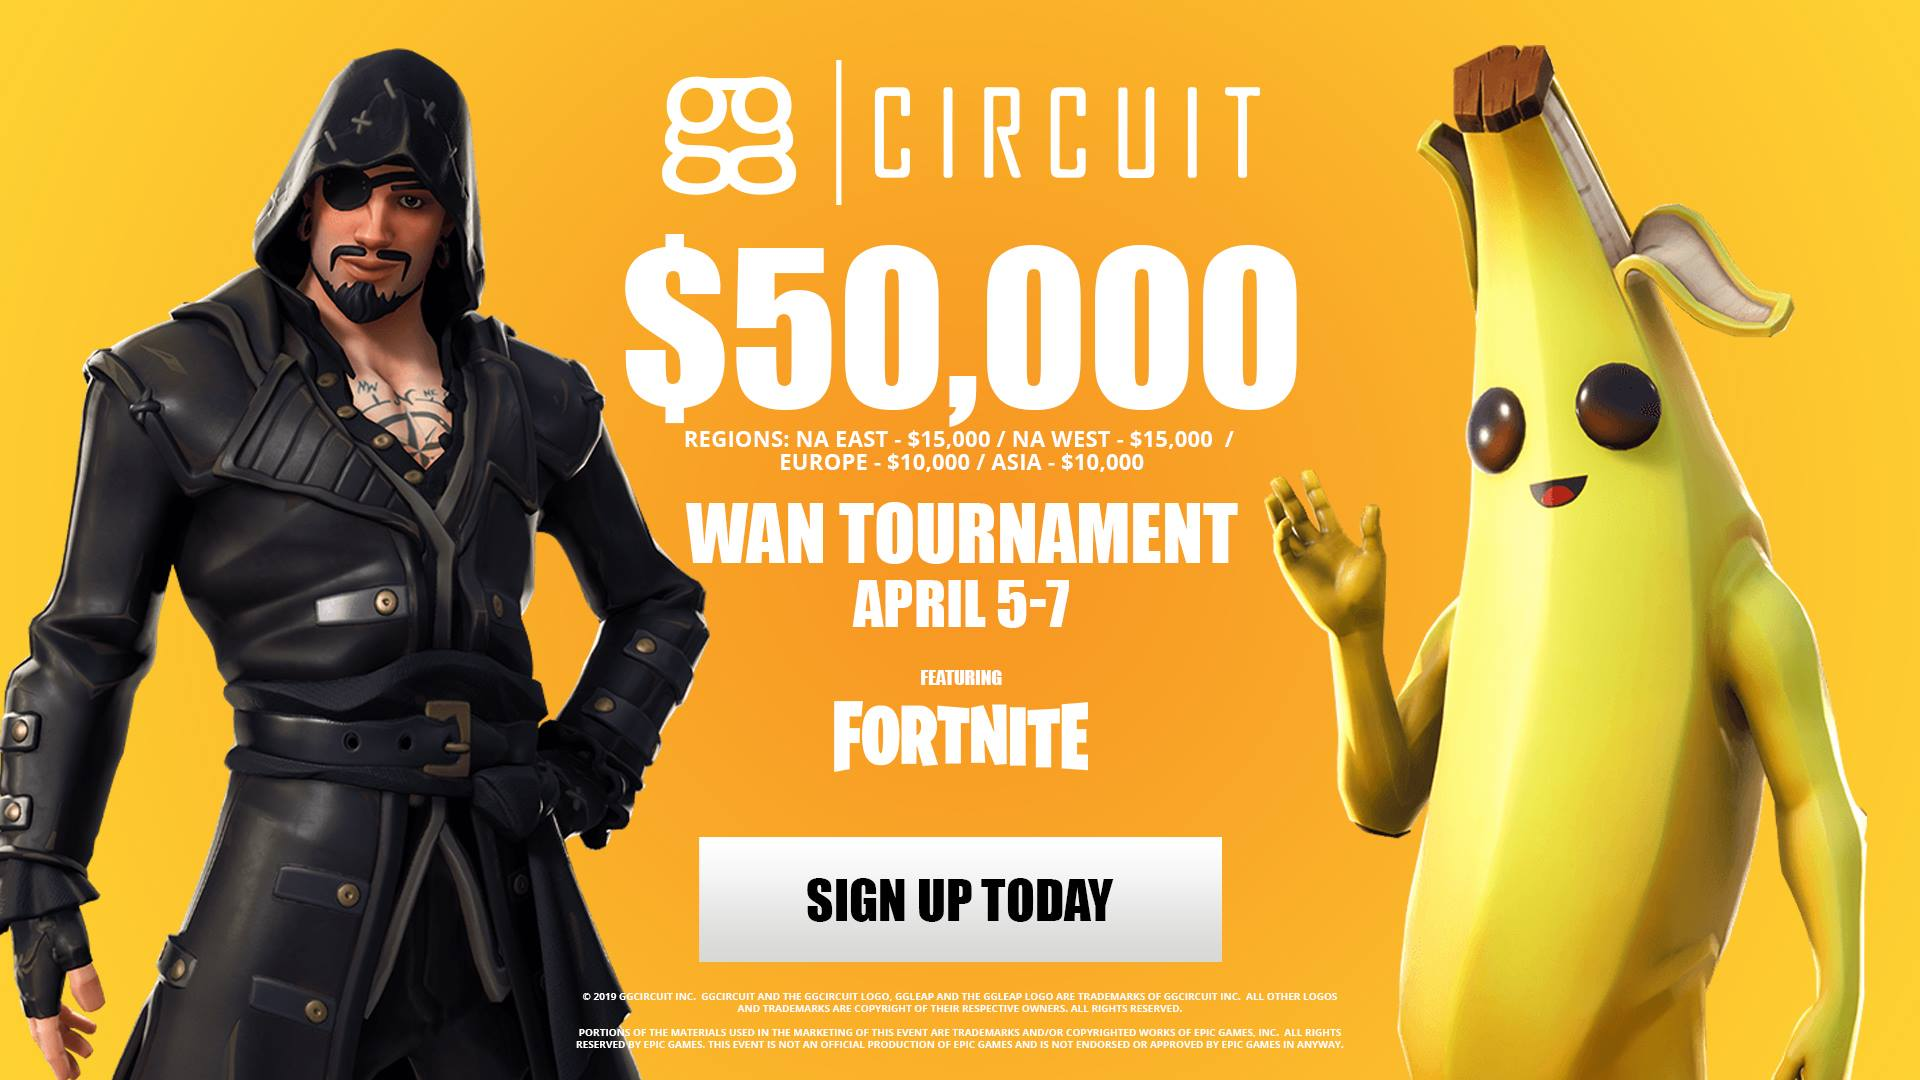 Fortnite Spring Regionals Entry GG Circuit